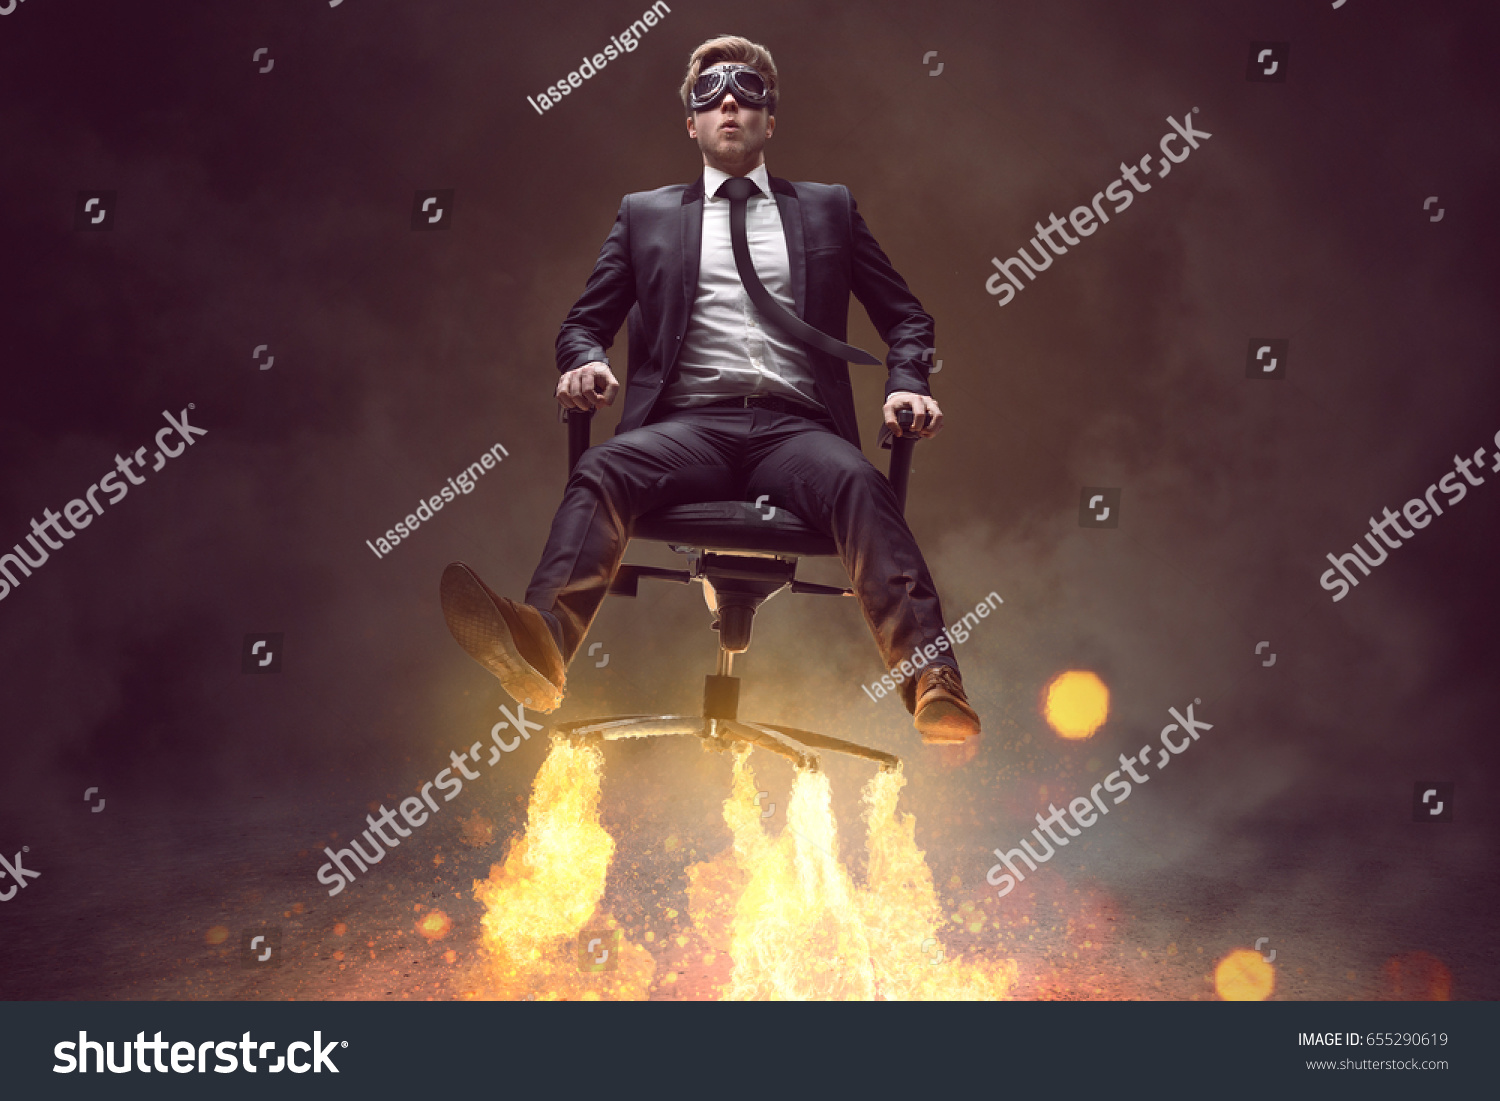 Incroyable Man With Rocket Chair